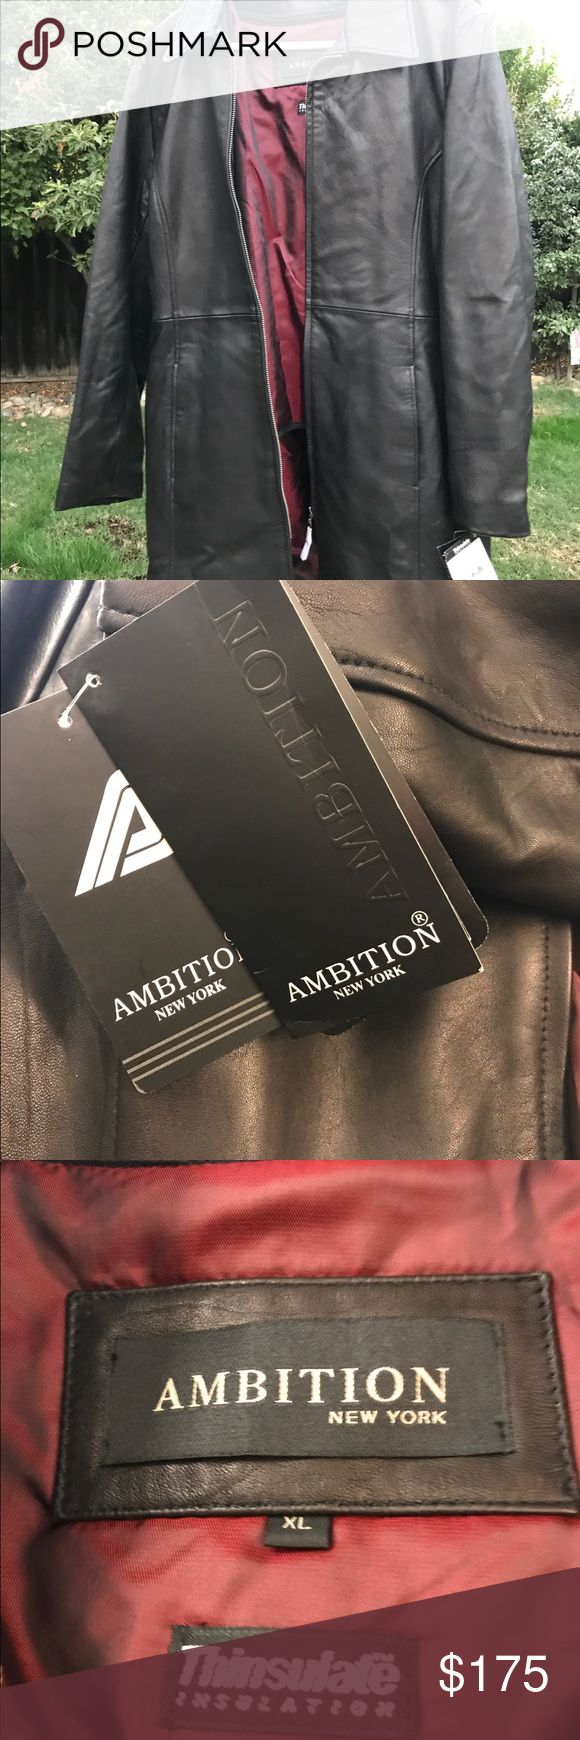 Lambskin Leather Jacket Super warm! Given to me as a gift Ambition New York Jackets & Coats